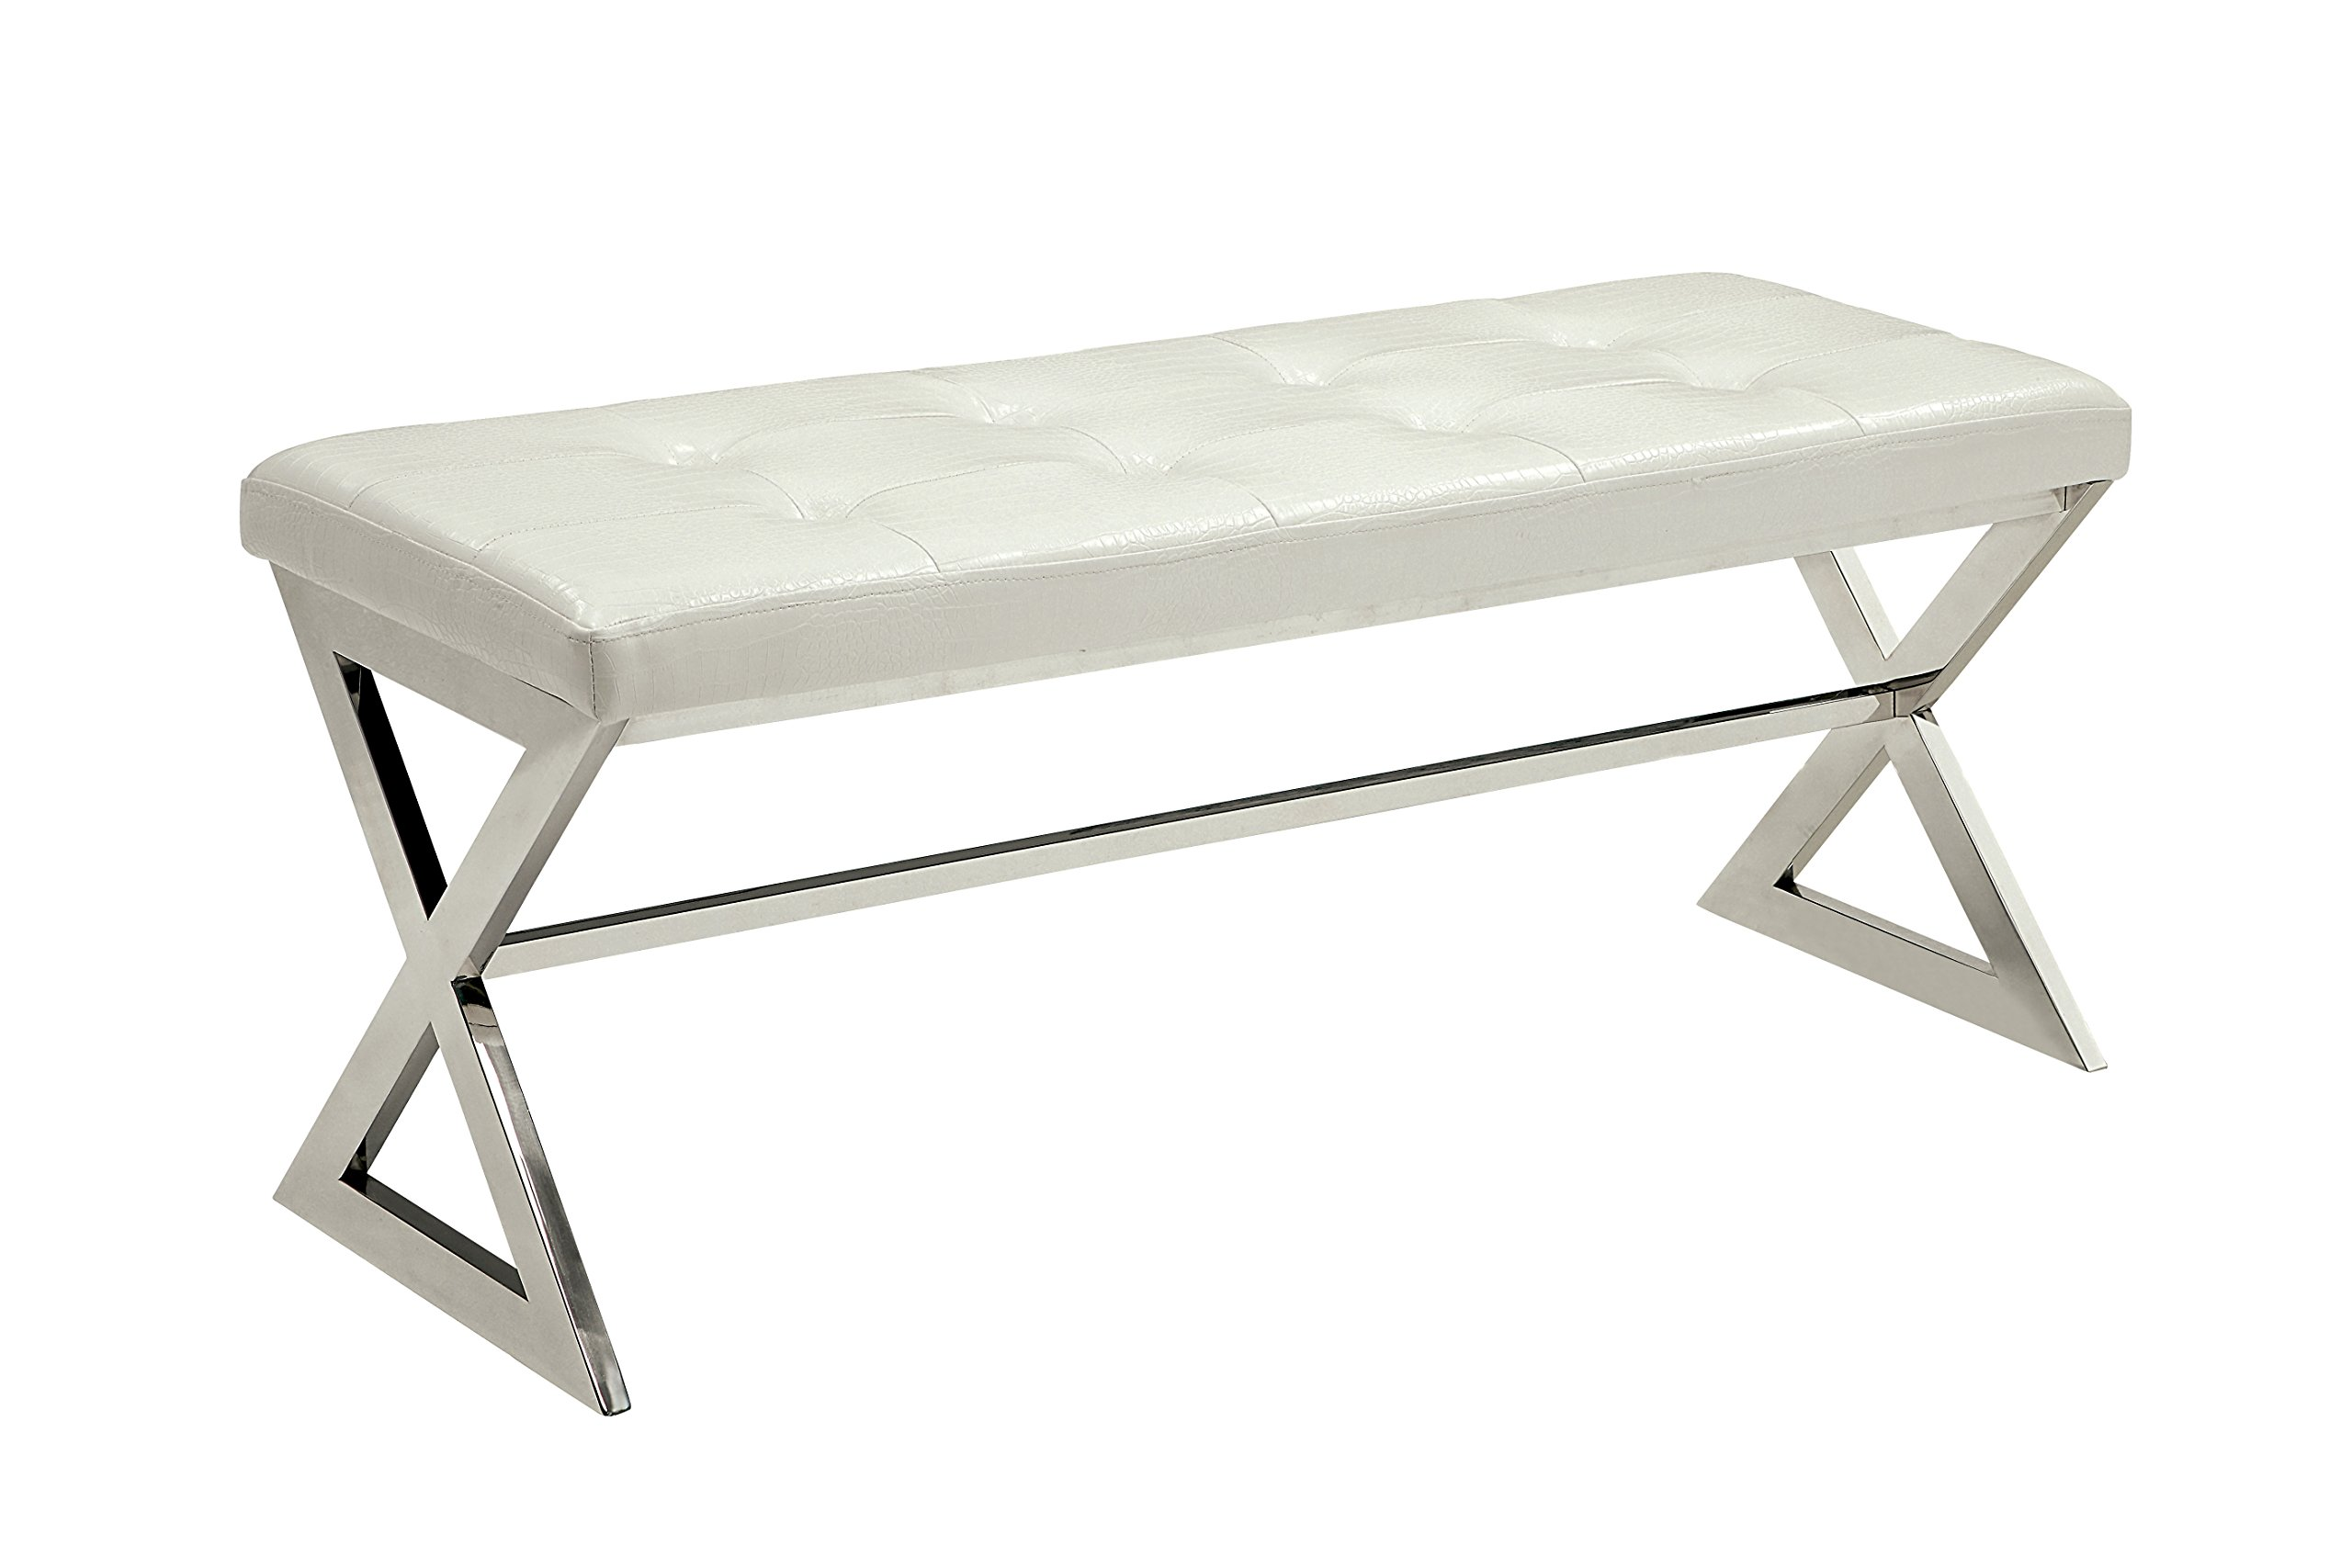 HOMES: Inside + Out IDF-BN6913WH Jeany Contemporary Bench Not Applicable, White by HOMES: Inside + Out